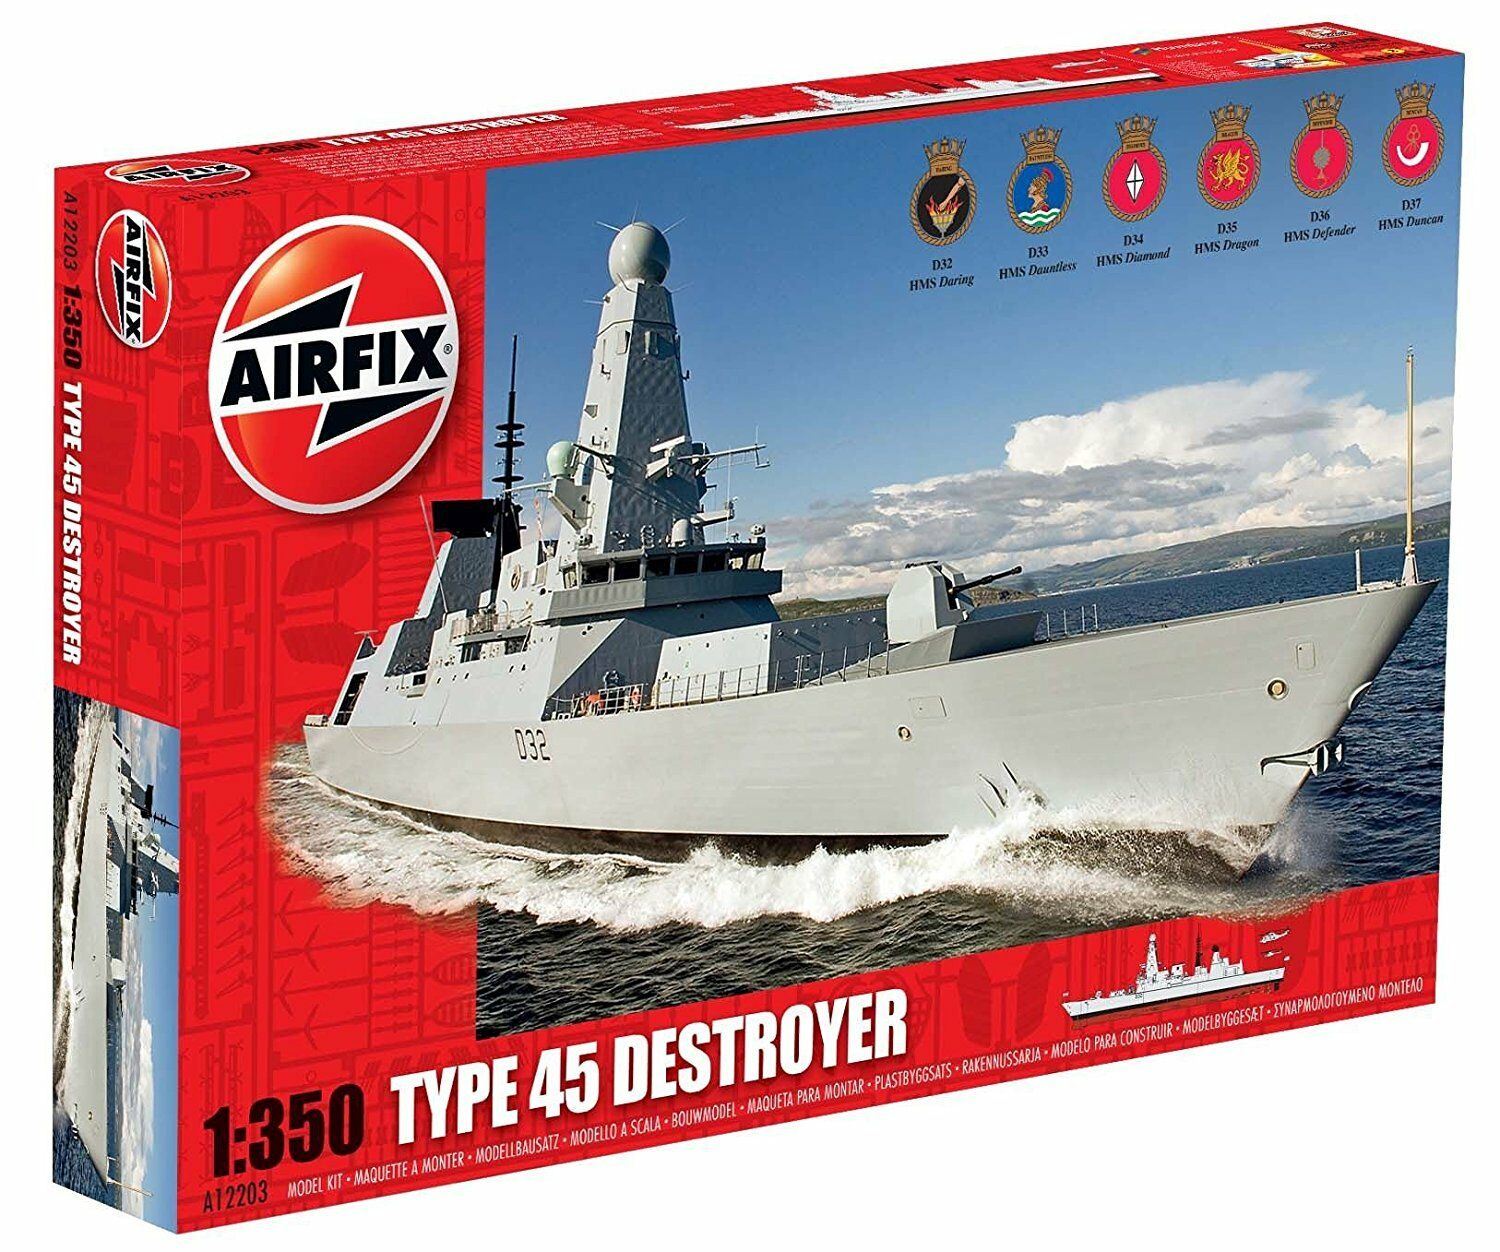 Airfix 1 350 Type 45 Destroyer HMS Daring, Duncan, Dragon (Imperfect Box)